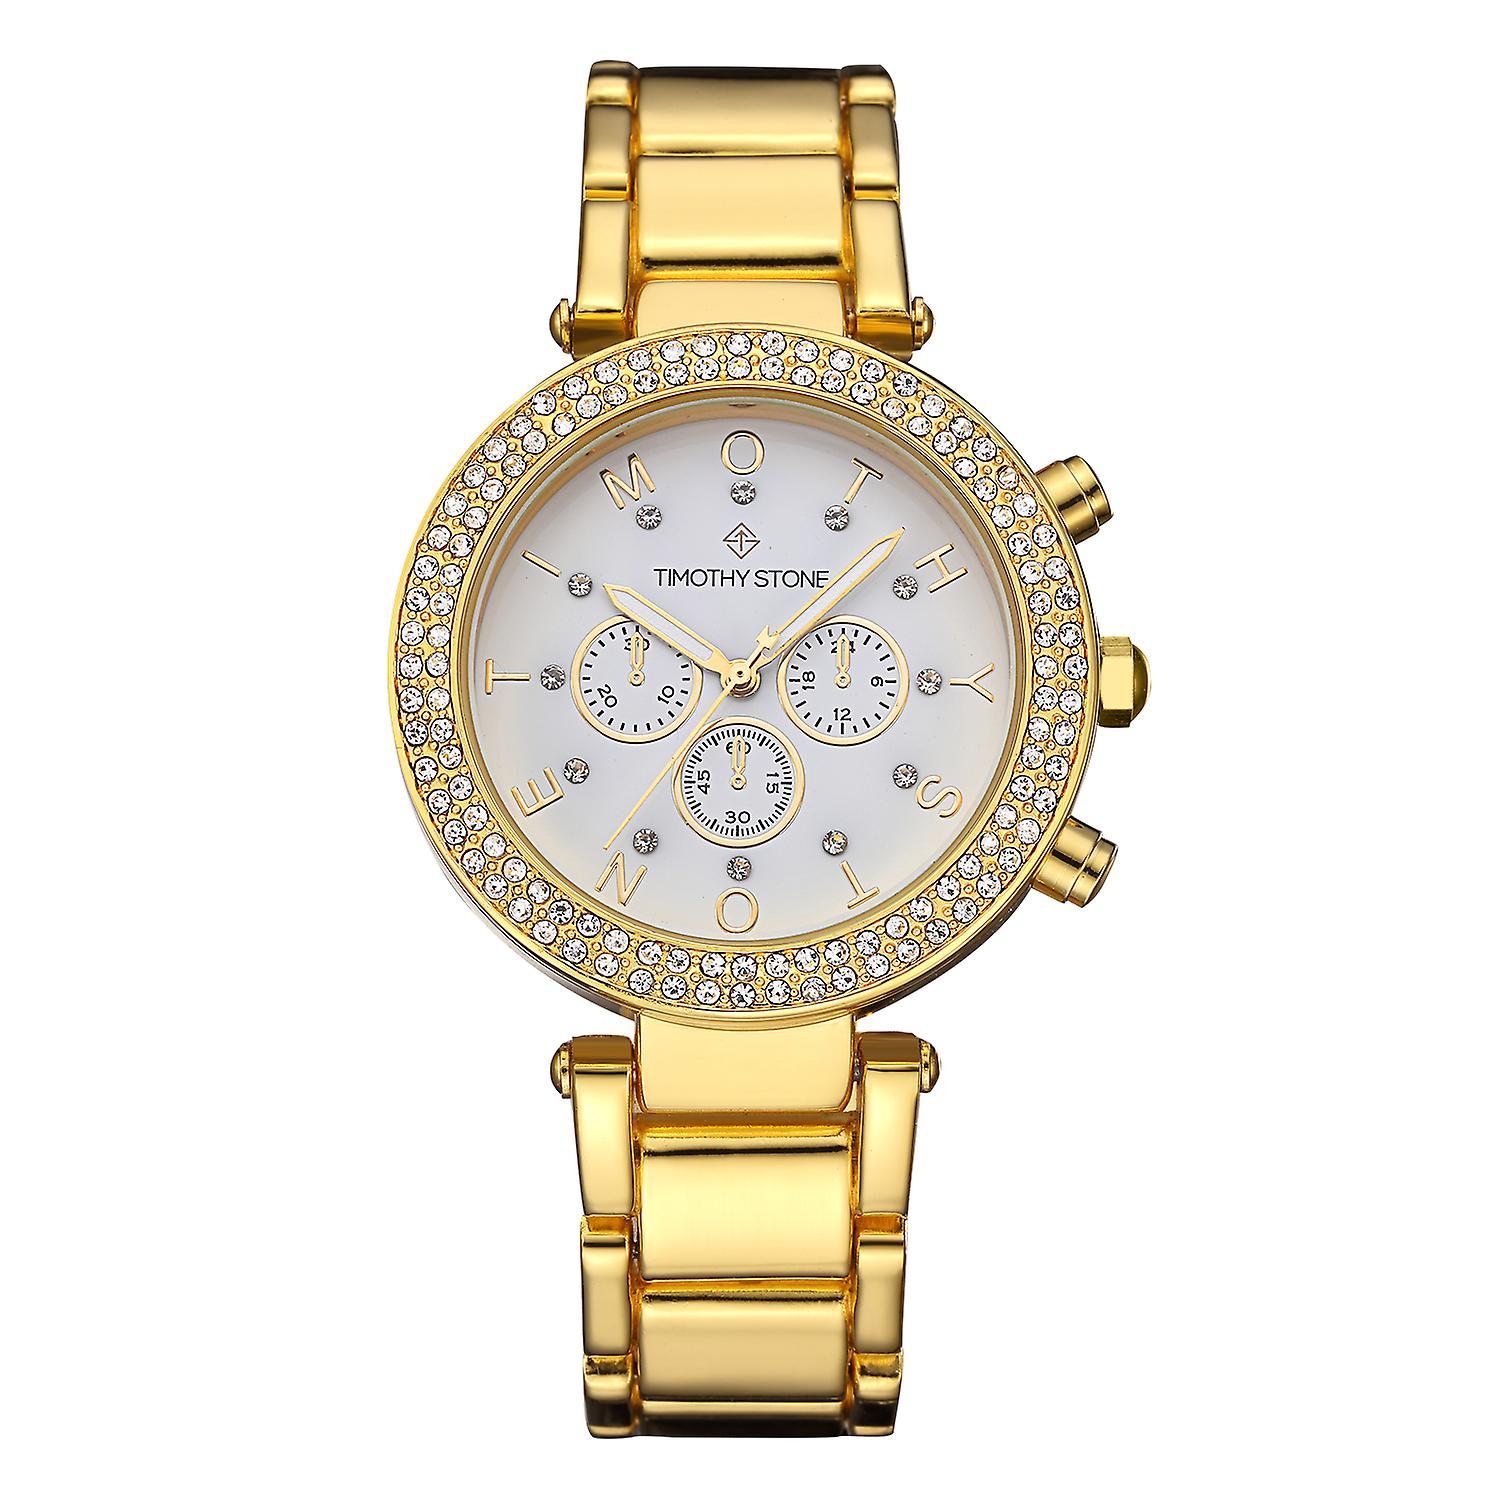 Timothy Stone Women's D�SIRE-STAINLESS Gold-Tone Watch